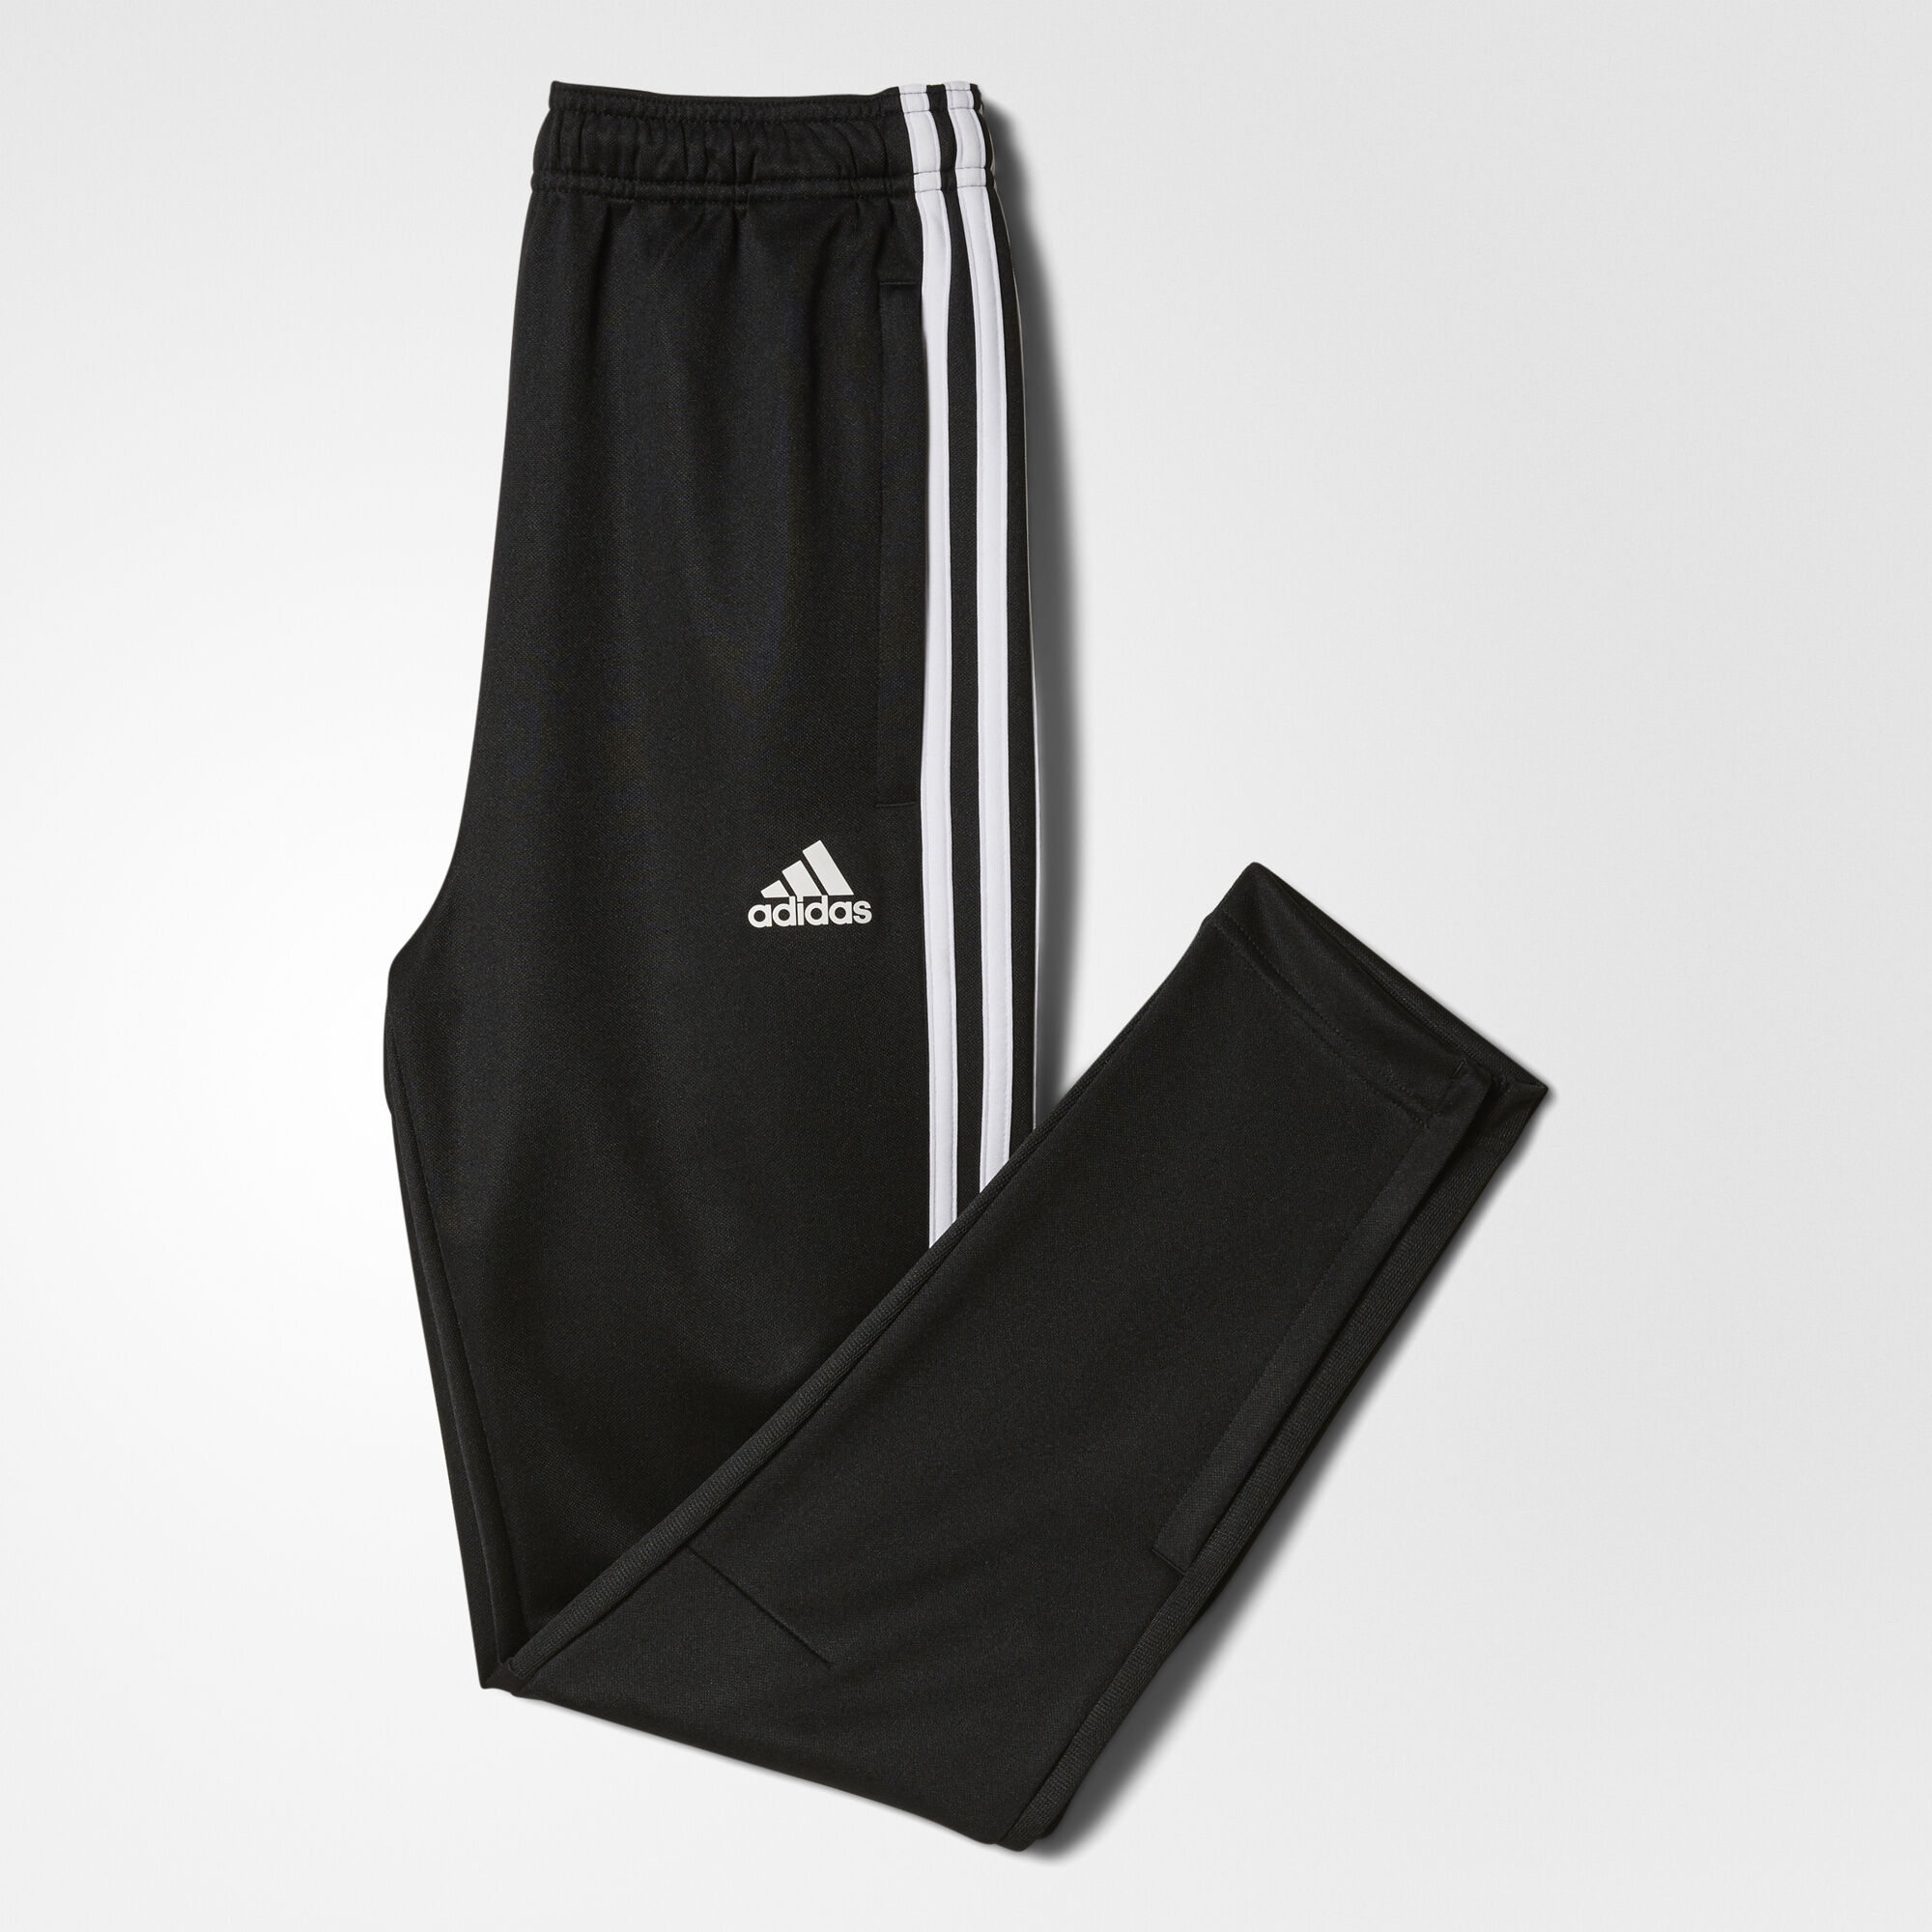 adidas survetement bebe